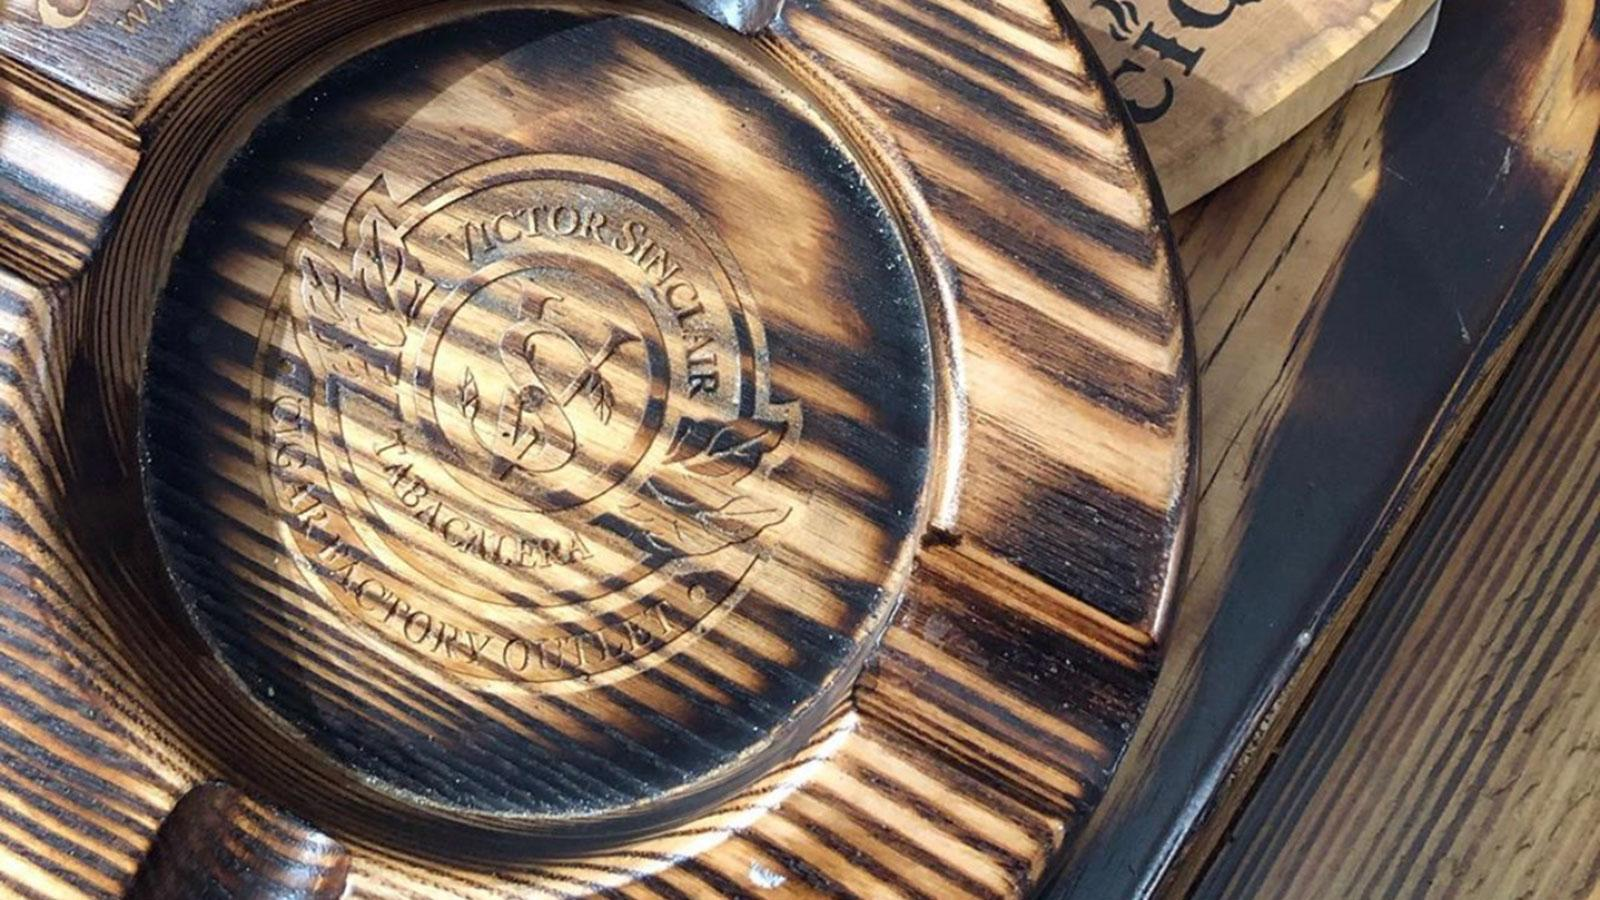 Cigarzona can engrave nearly any logo not only in the center of the bowl, but on the borders, as well.